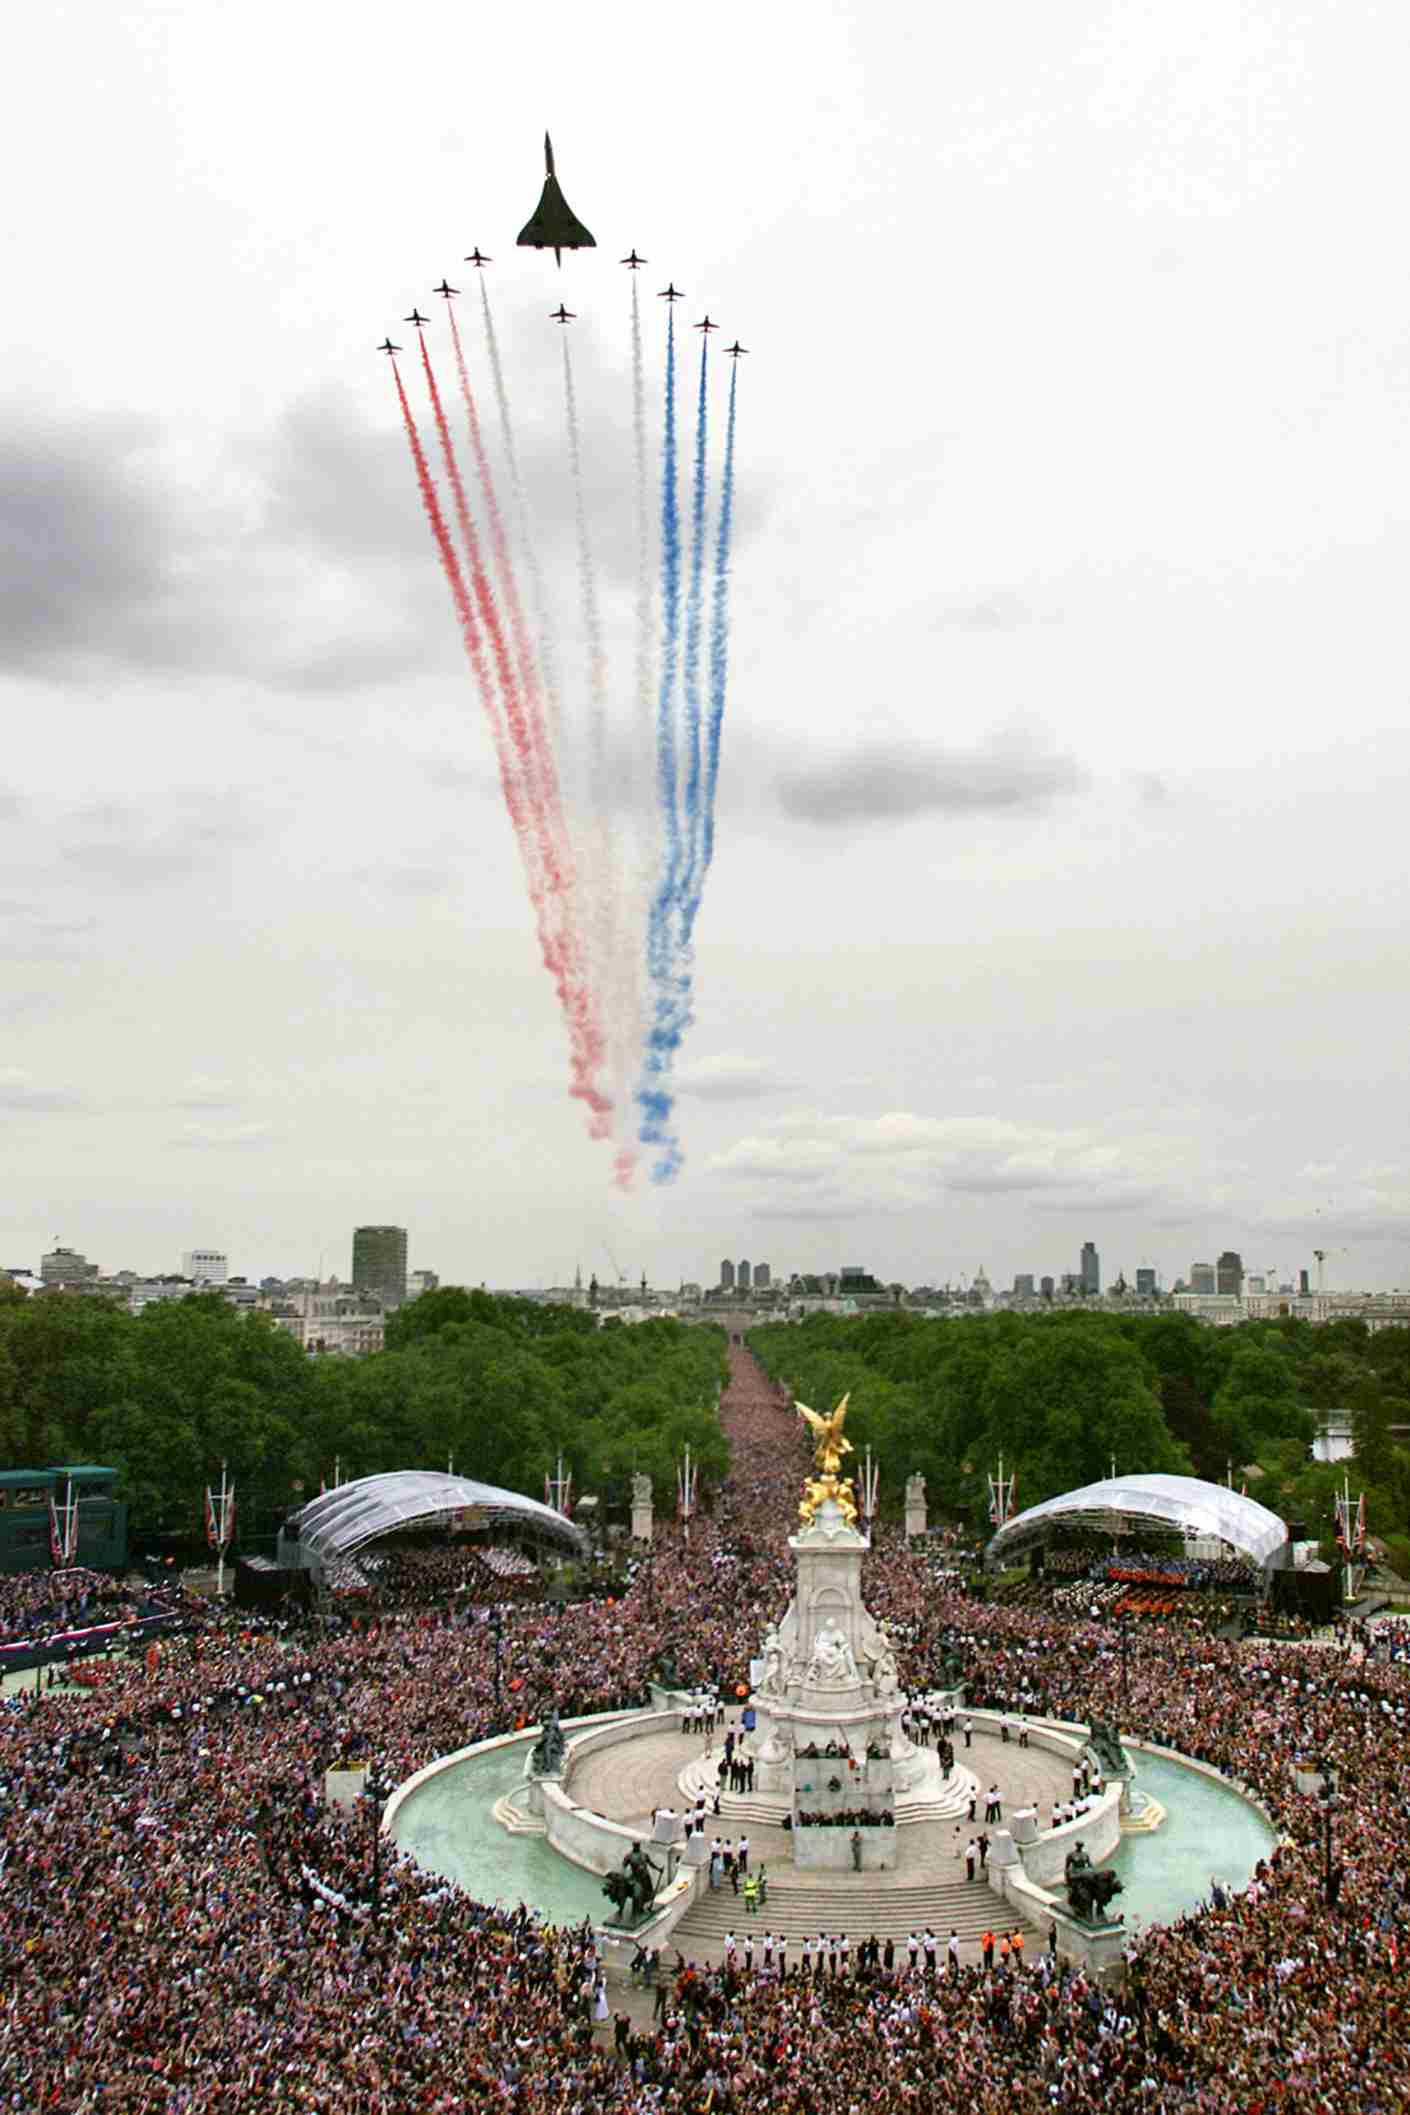 The Jubilee Fly past of 27 aircraft, including the Red Arrows and Concorde, fly above The Mall as part of the celebration to mark the Golden Jubilee of Britain